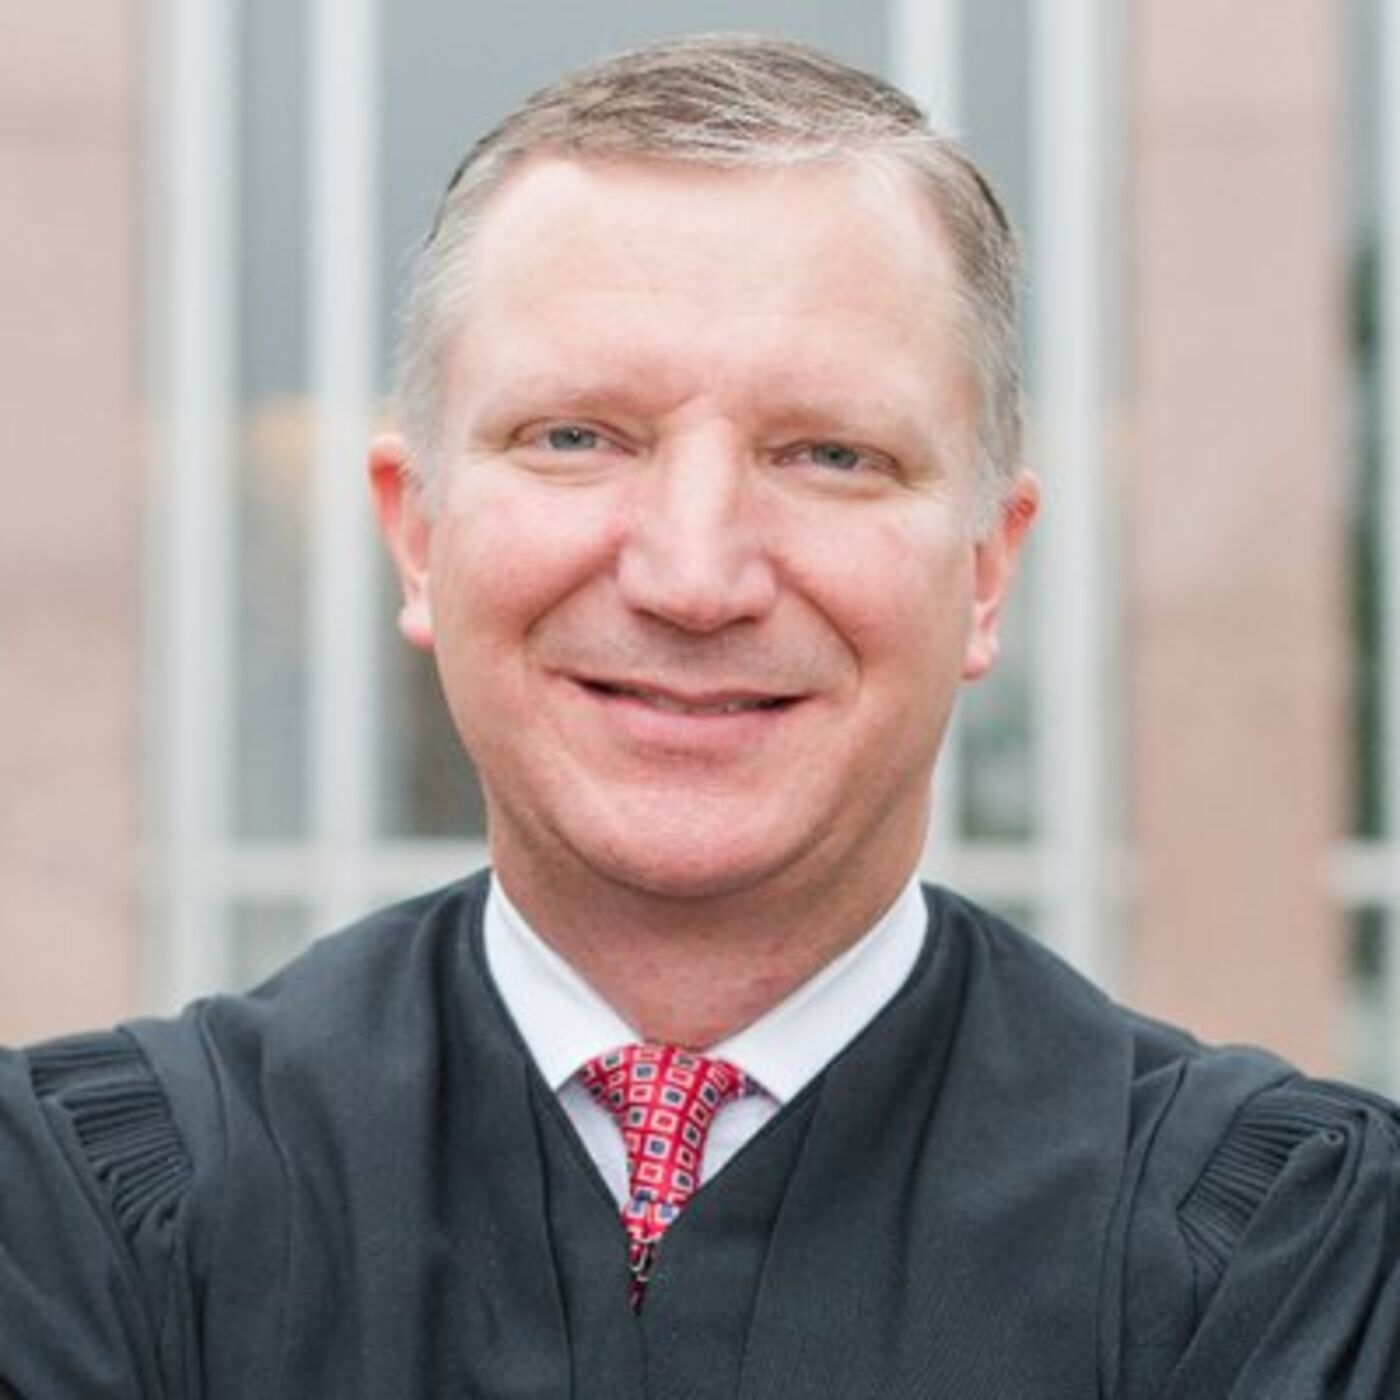 The Honorable Judge Jeff Brown